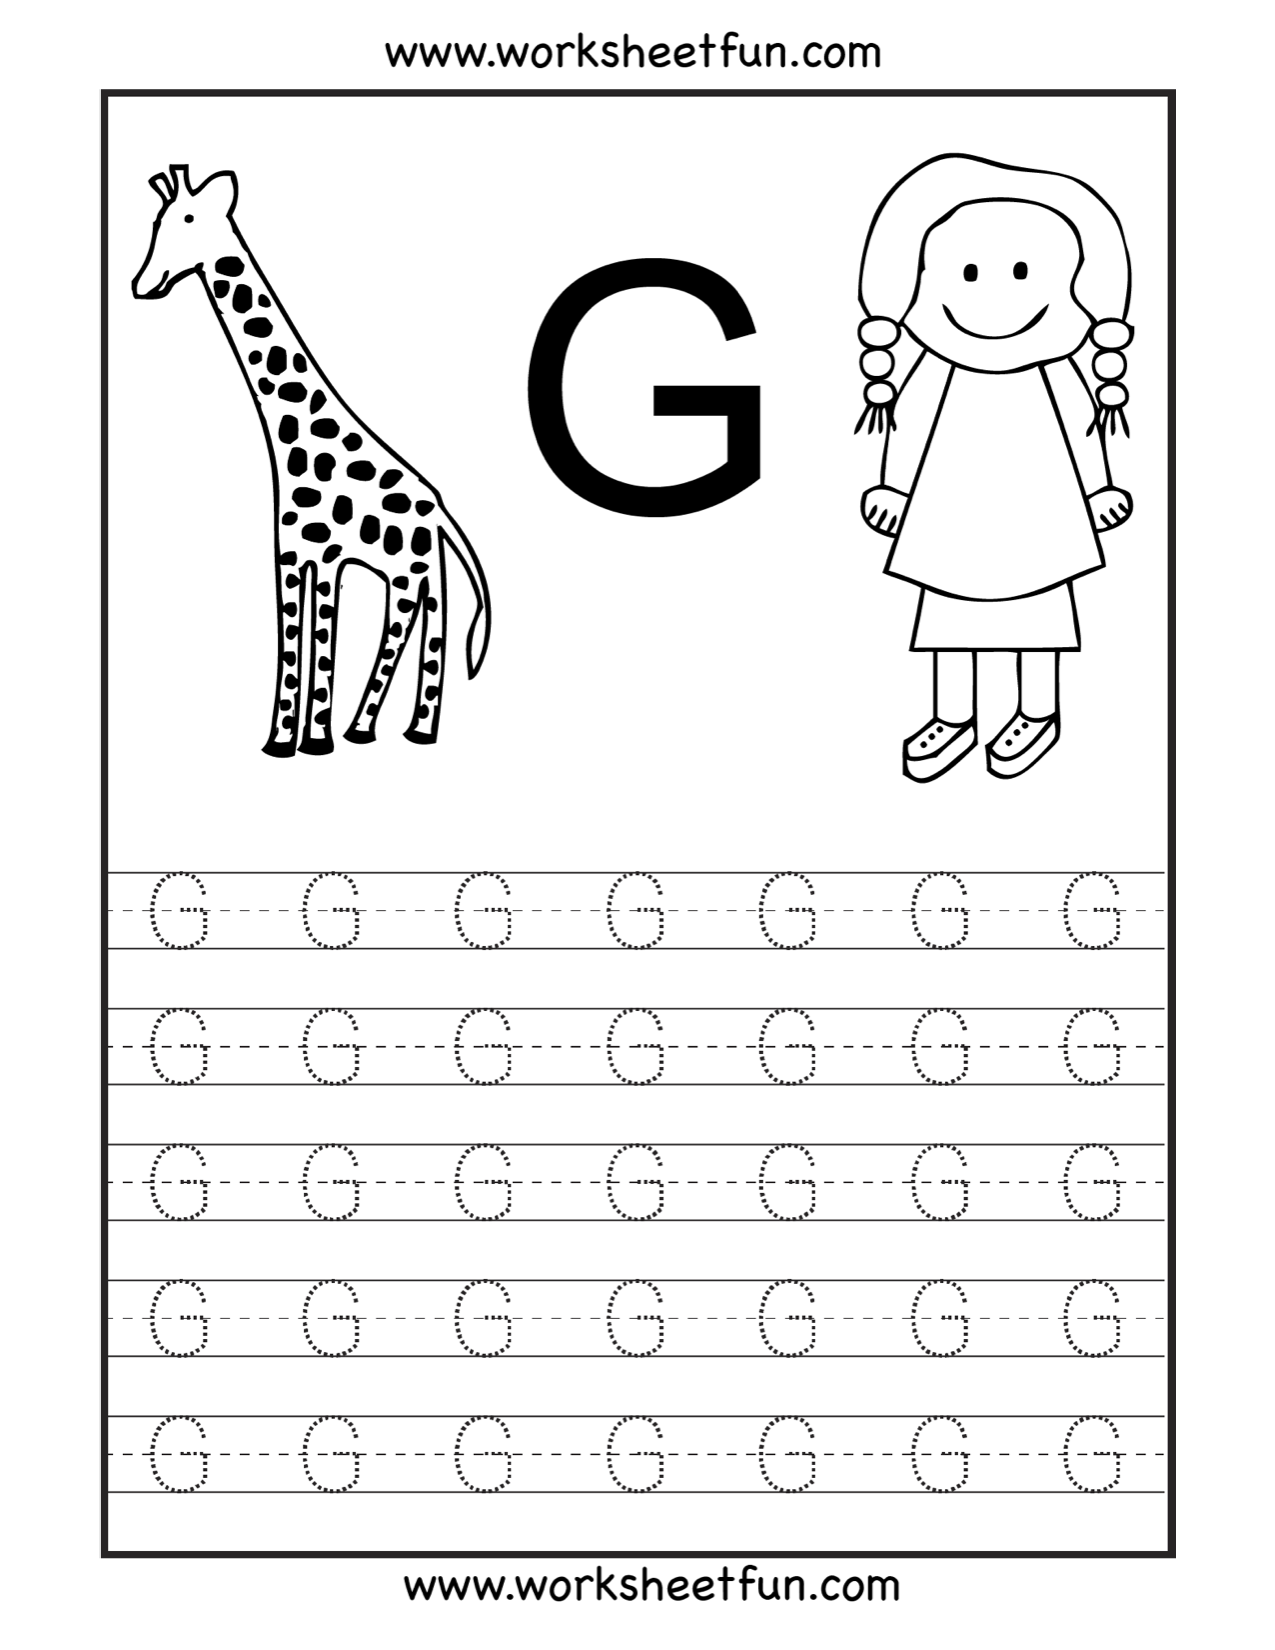 Pin By Casey Chipka On Homeschooling Alphabet With